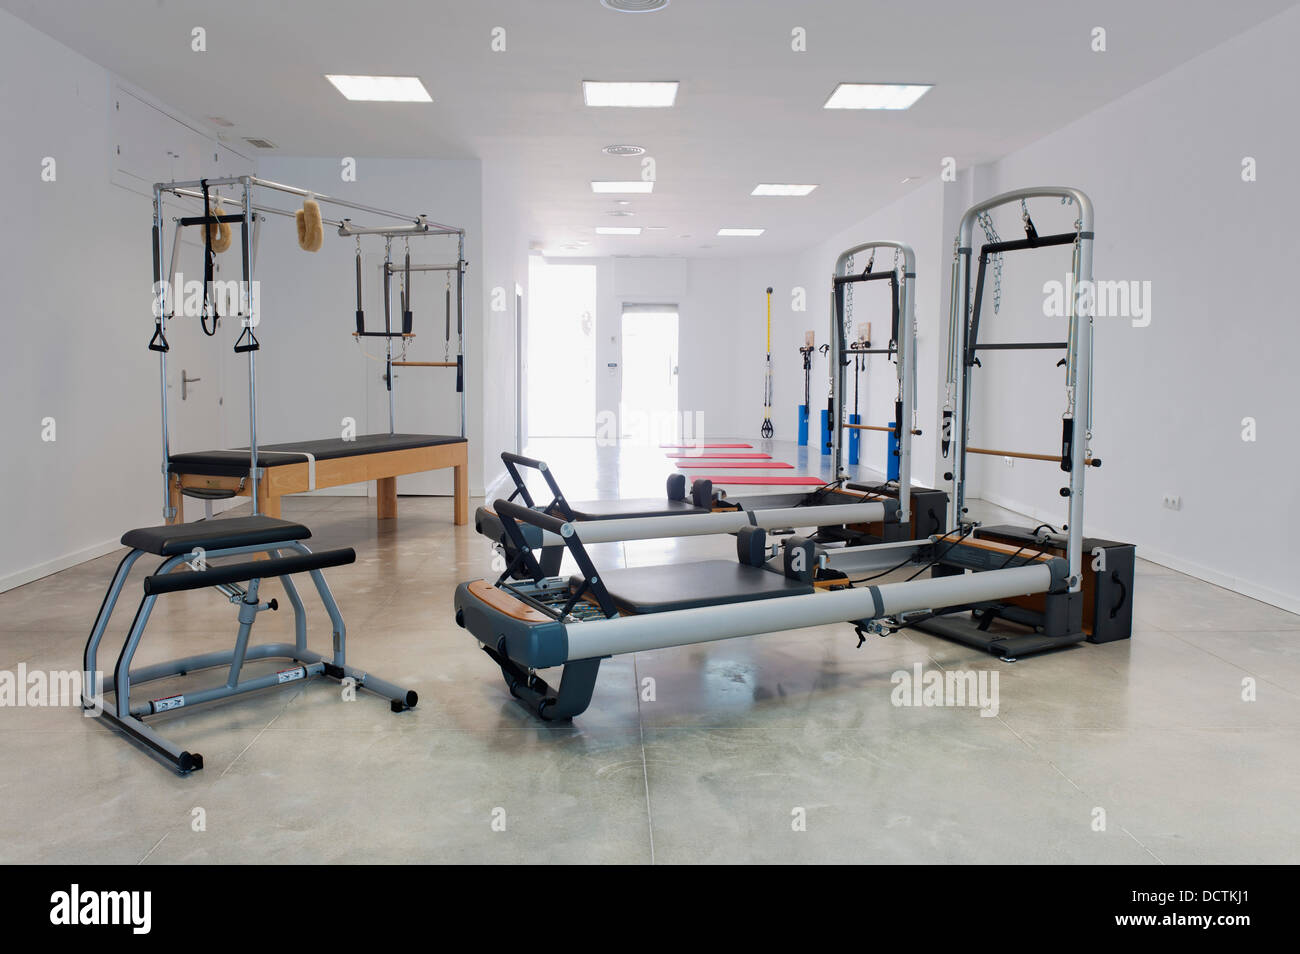 Exercise Equipment In A Workout Room; Benalamadena Costa, Malaga, Costa Del Sol, Andalusia, Spain - Stock Image